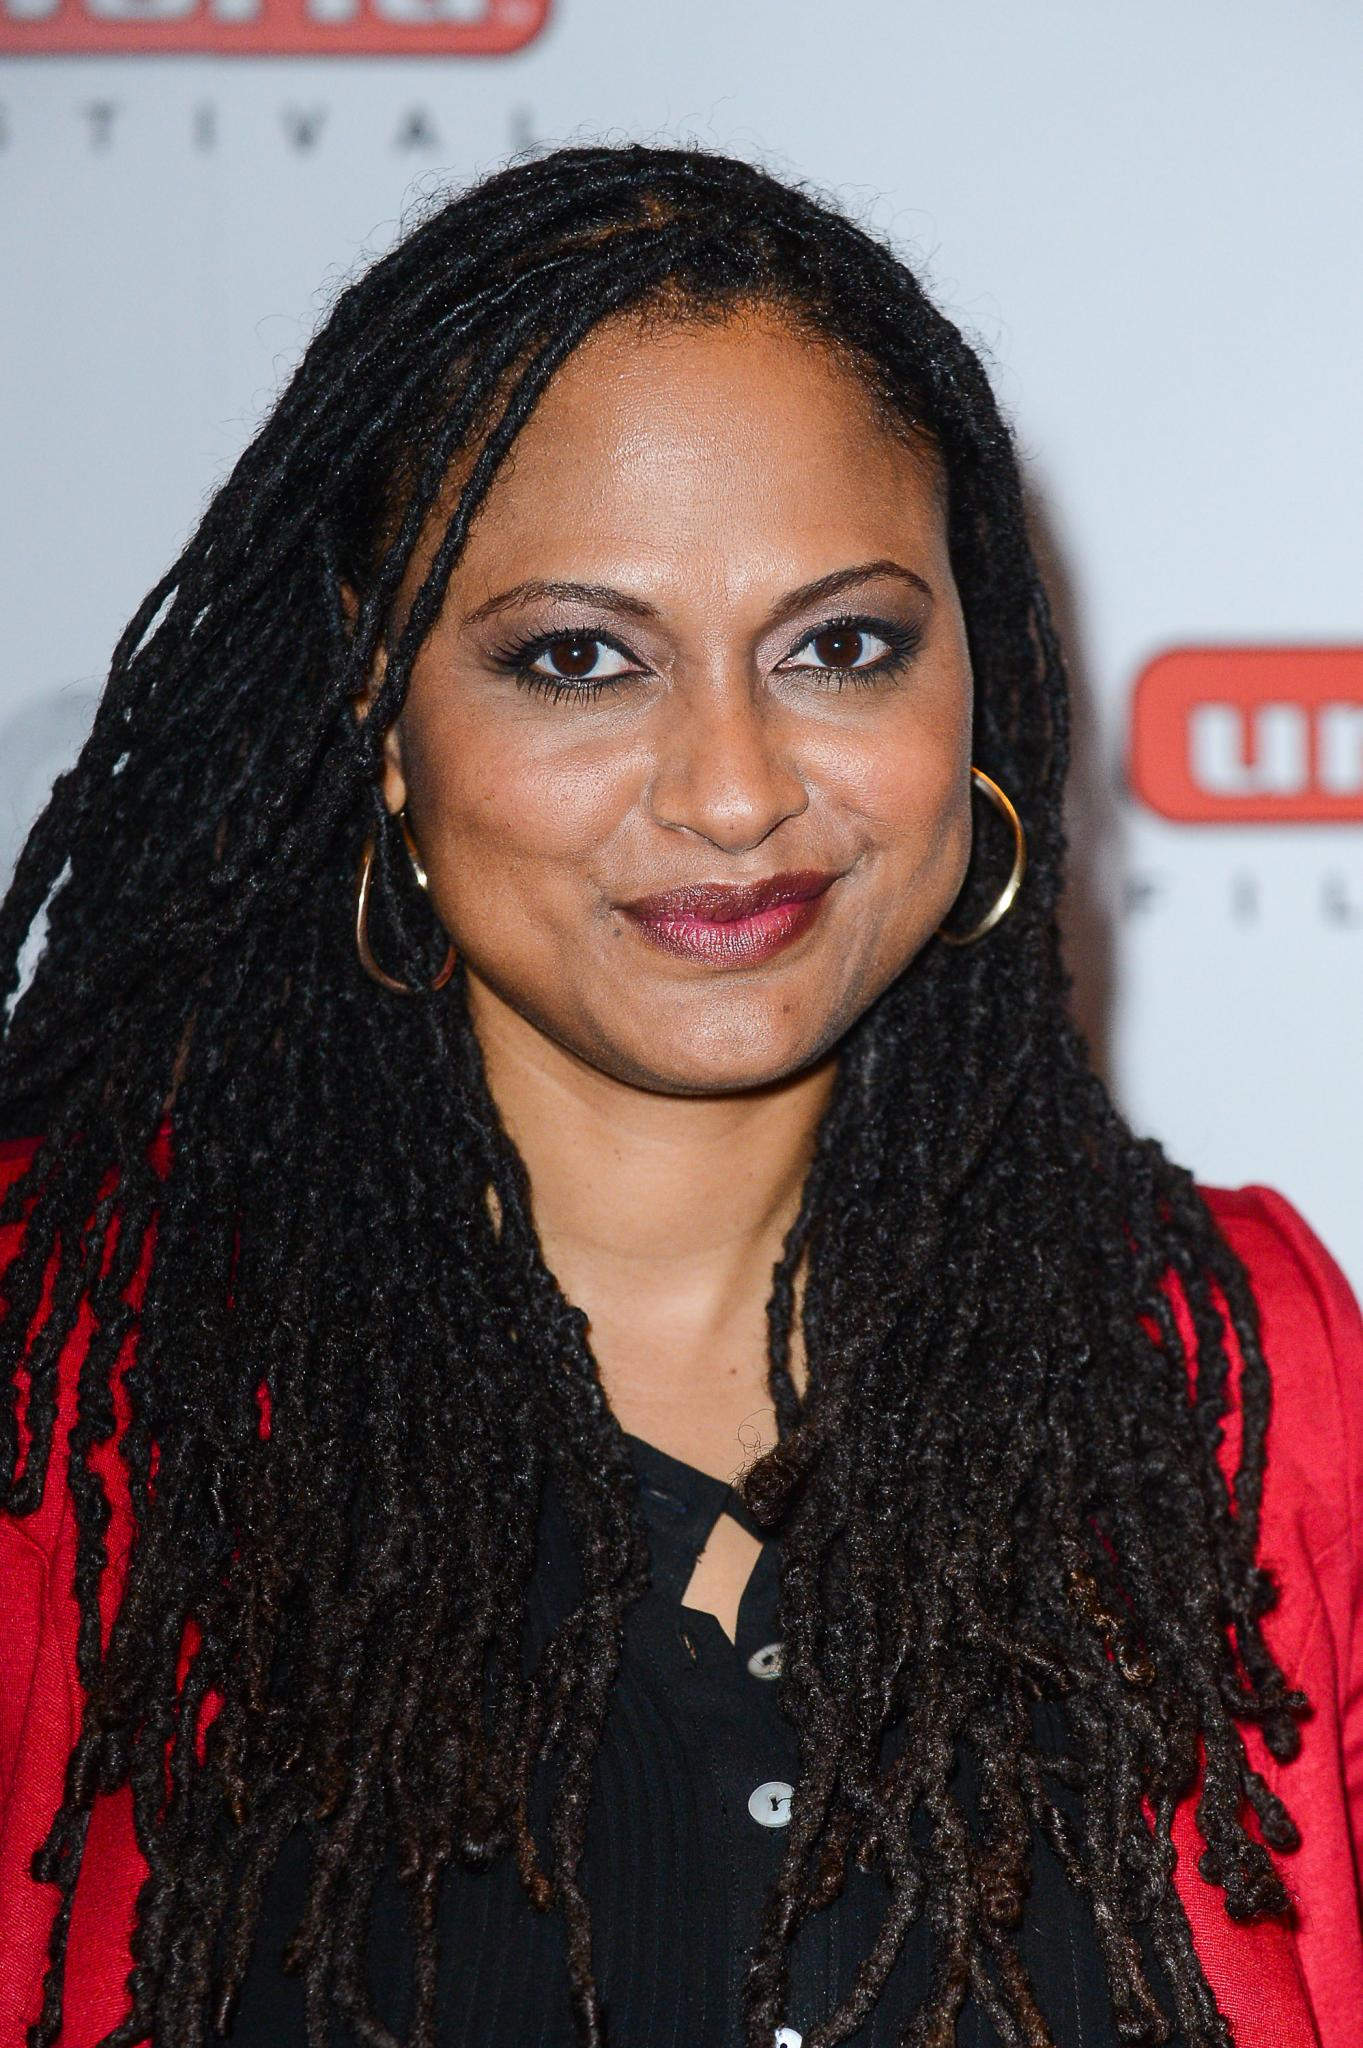 5 Things to Know About ESSENCE 'Black Women in Hollywood' Honoree Ava DuVernay